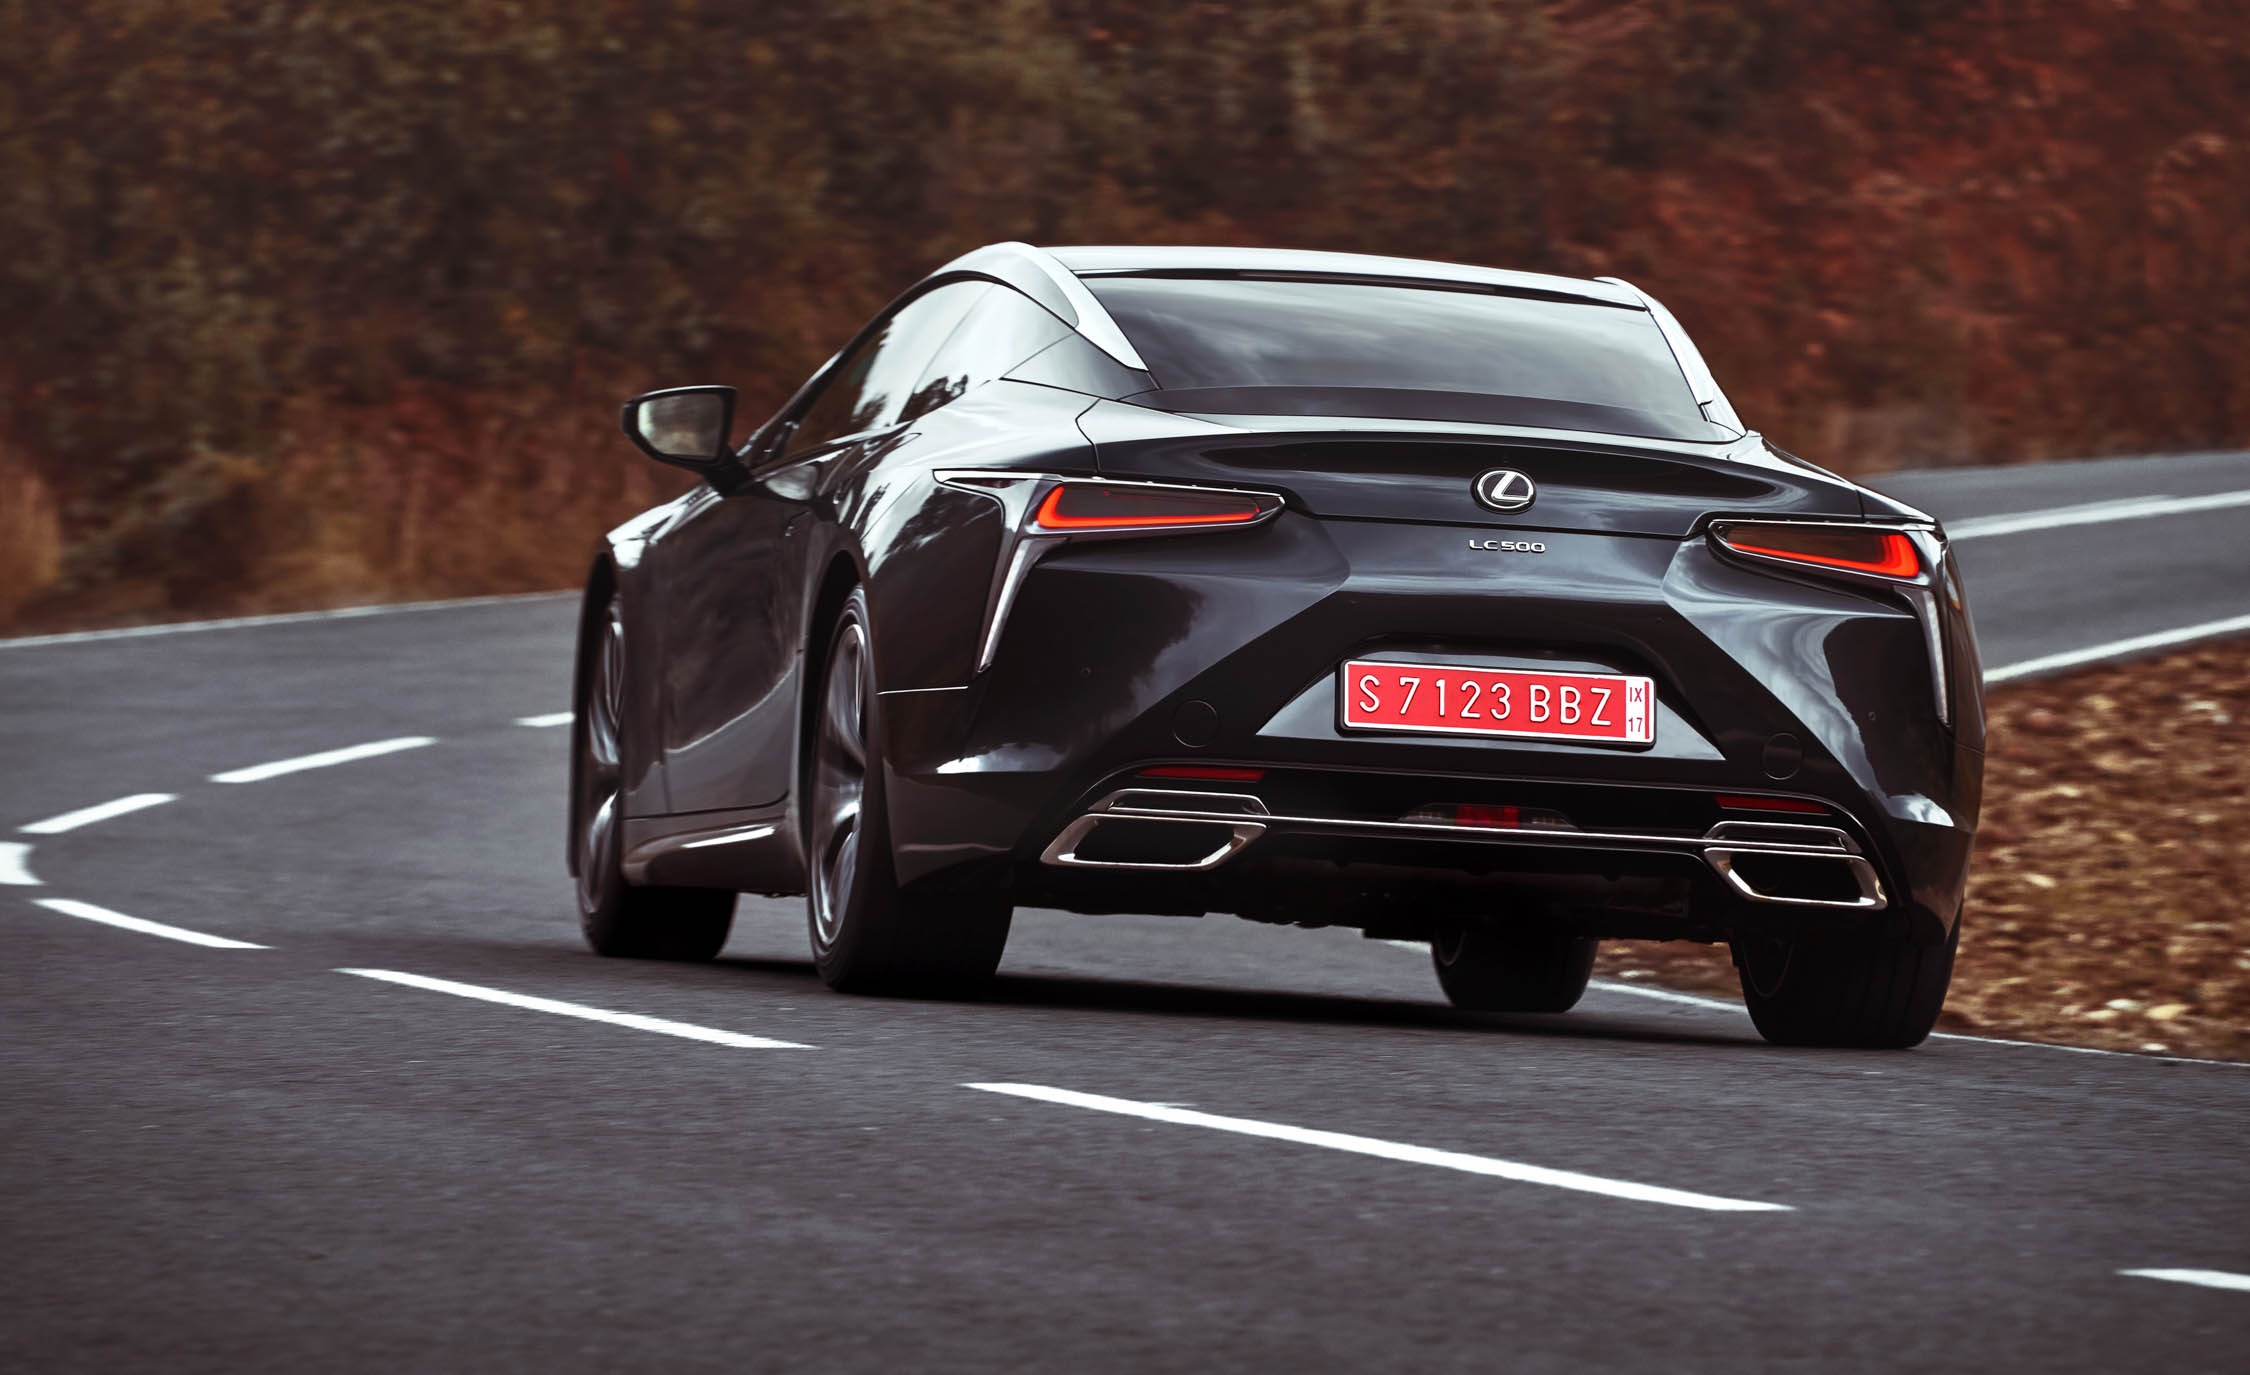 2018 Lexus Lc 500 Black Test Drive Rear (Photo 11 of 84)